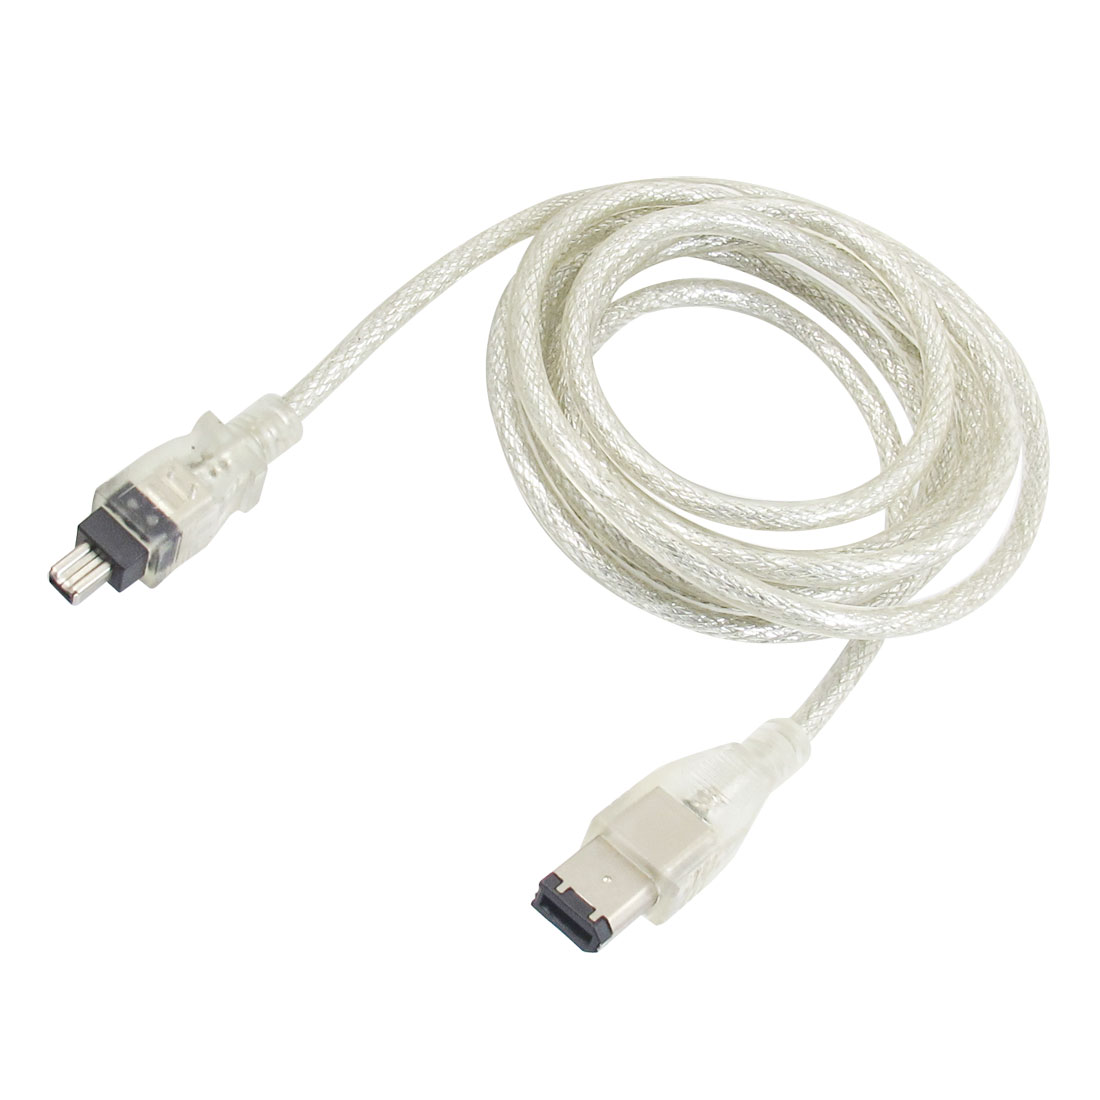 1.85M 1394b 4 Pin to 1394a 6P Firewire IEEE Data Cable